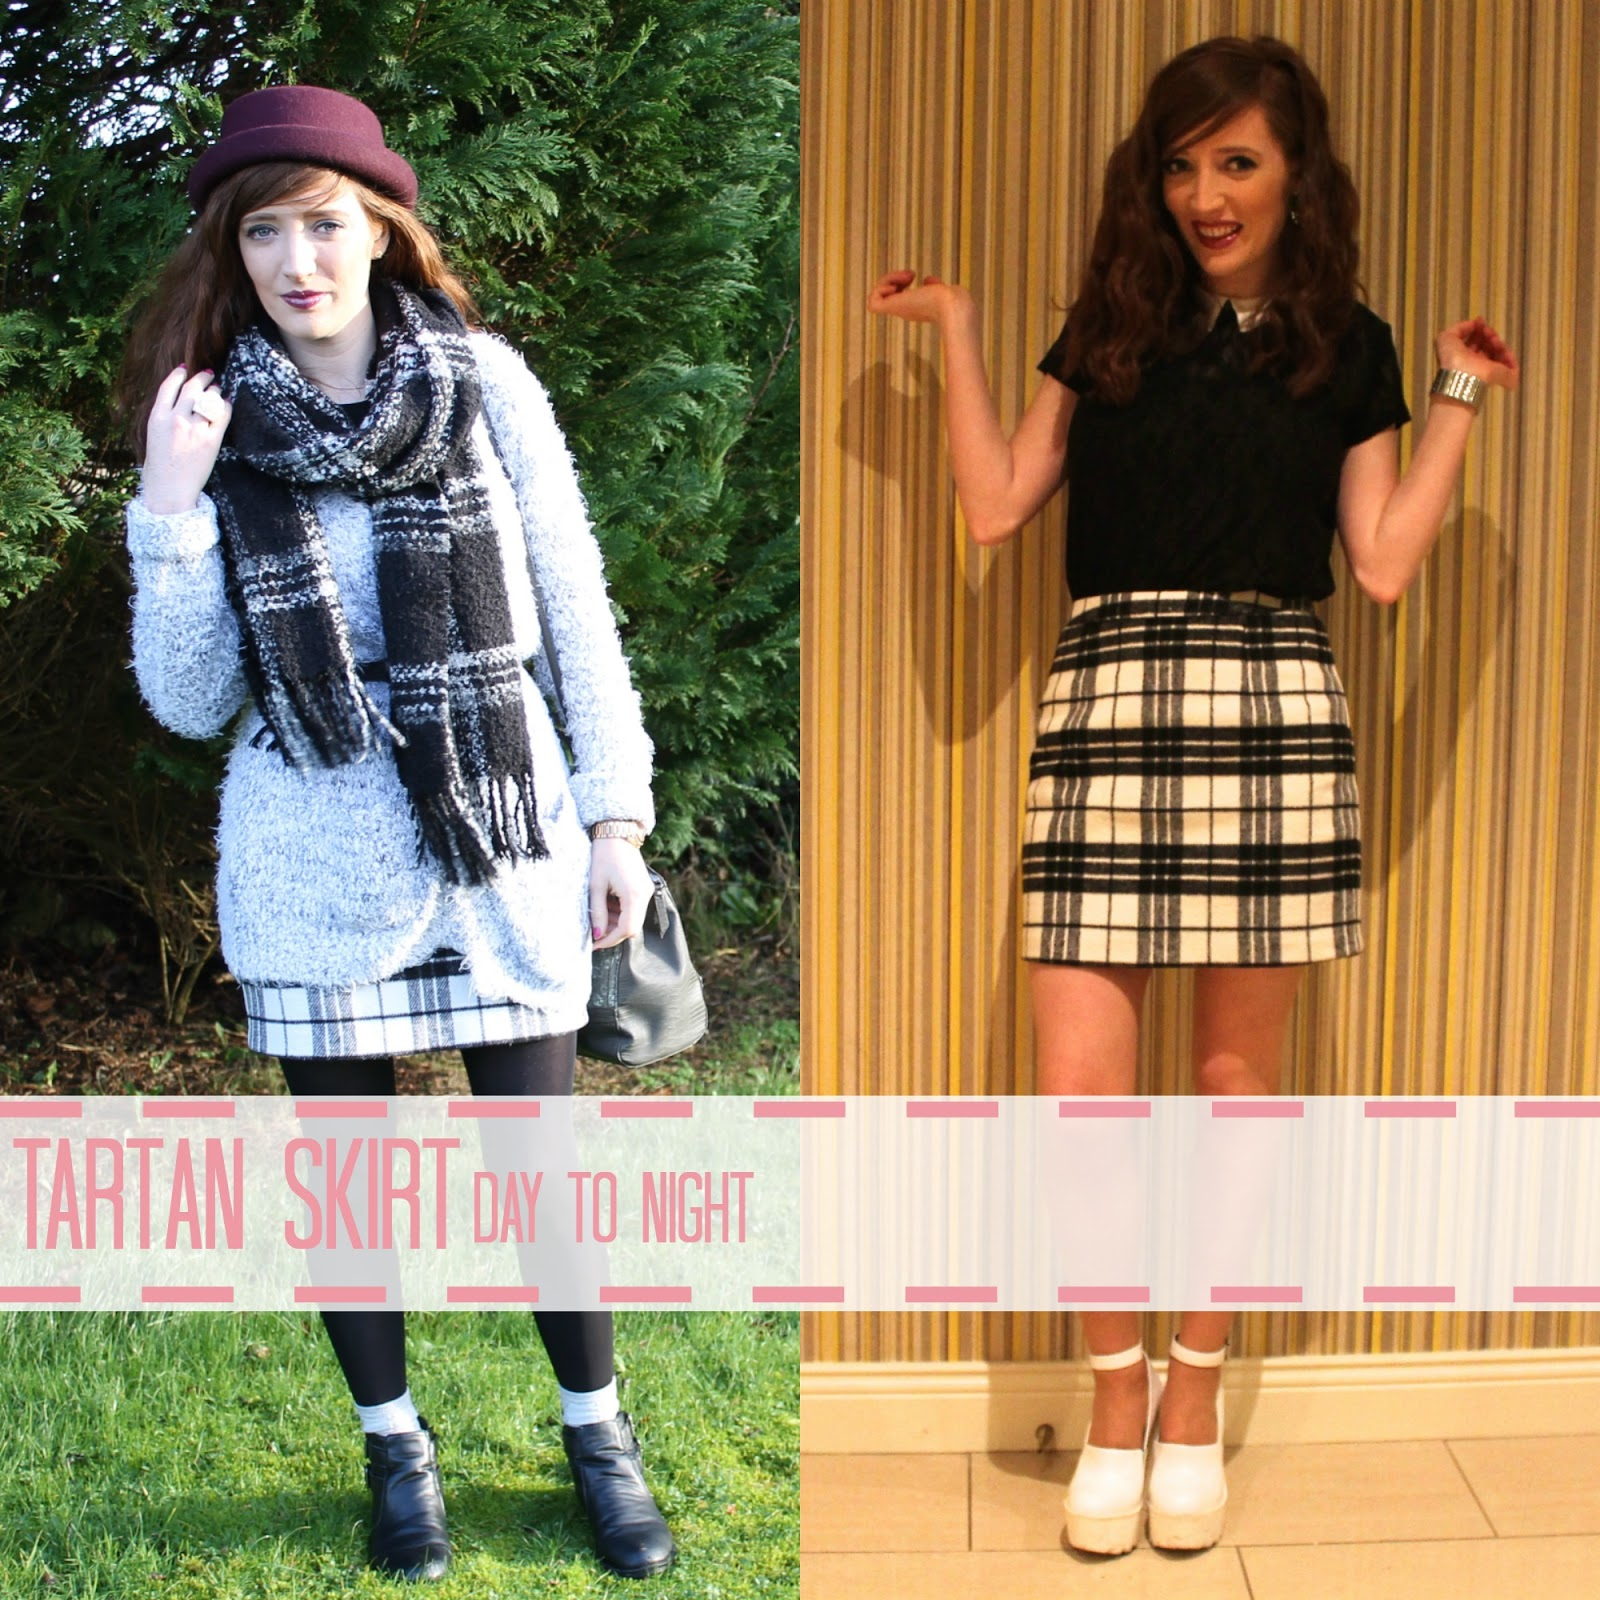 Bec boop tartan skirt day night